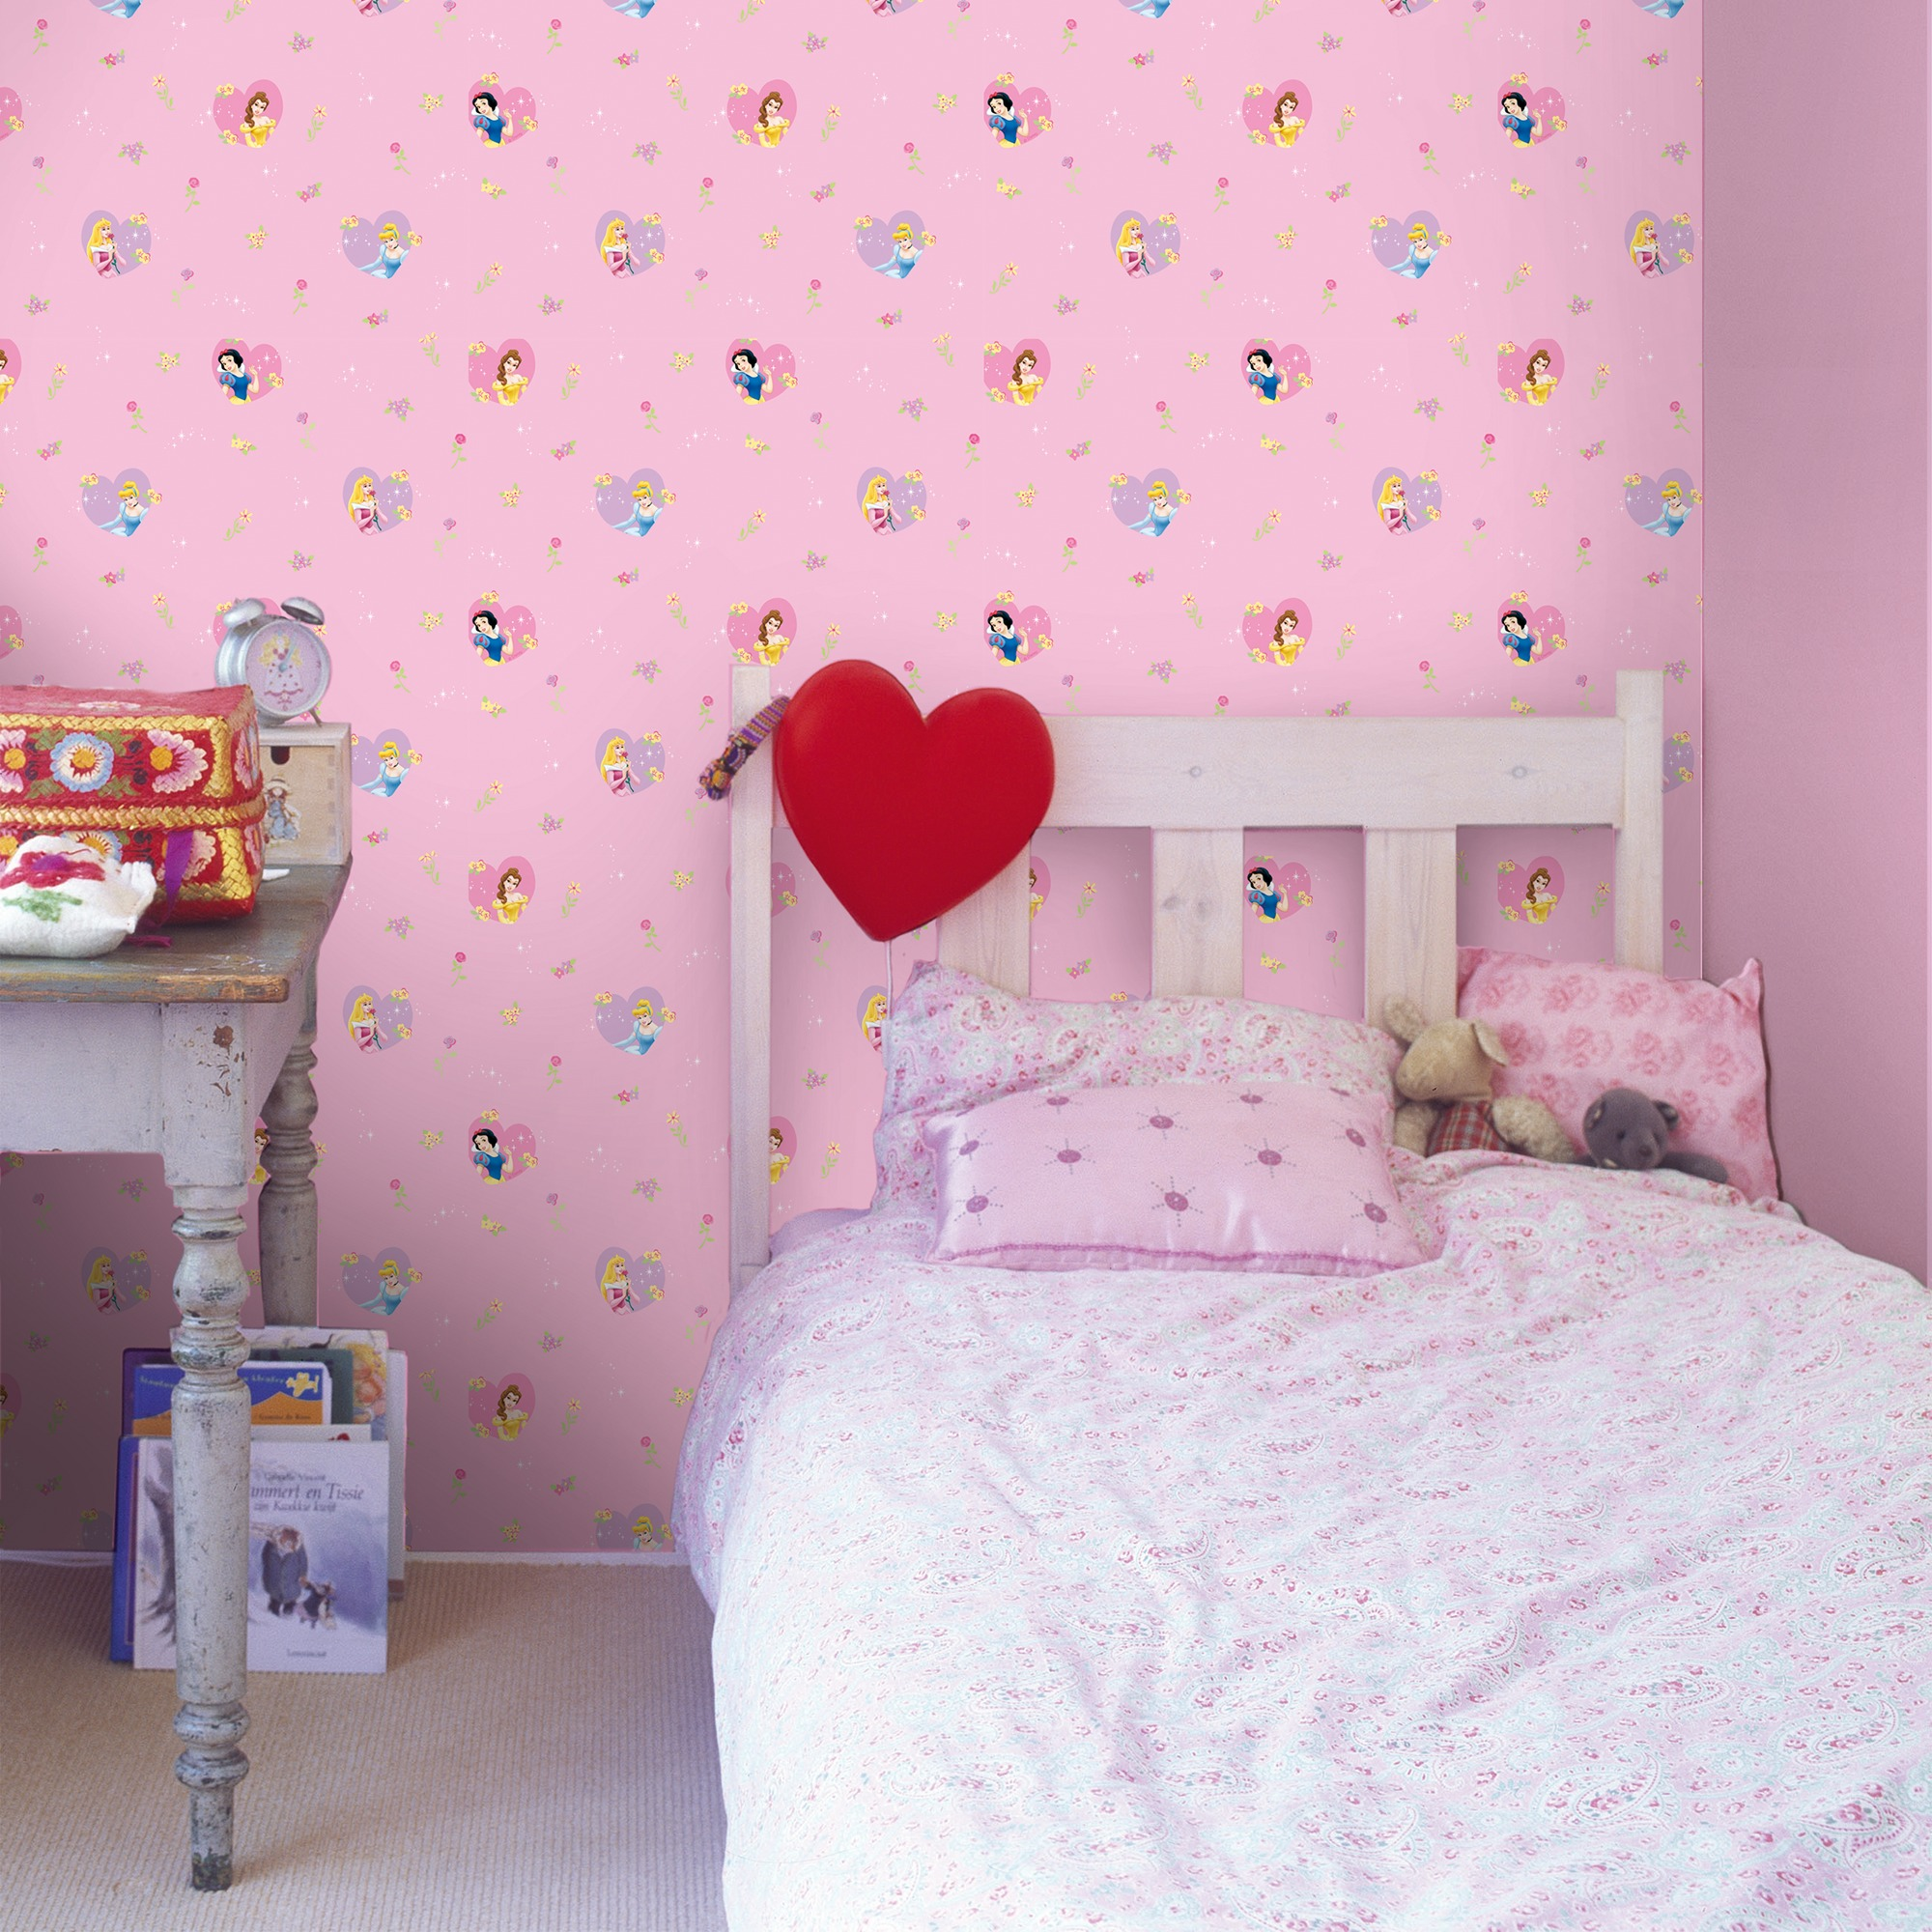 Disney duplex behang princess of hearts 1299 roze 10 meter for Renovlies behang gamma